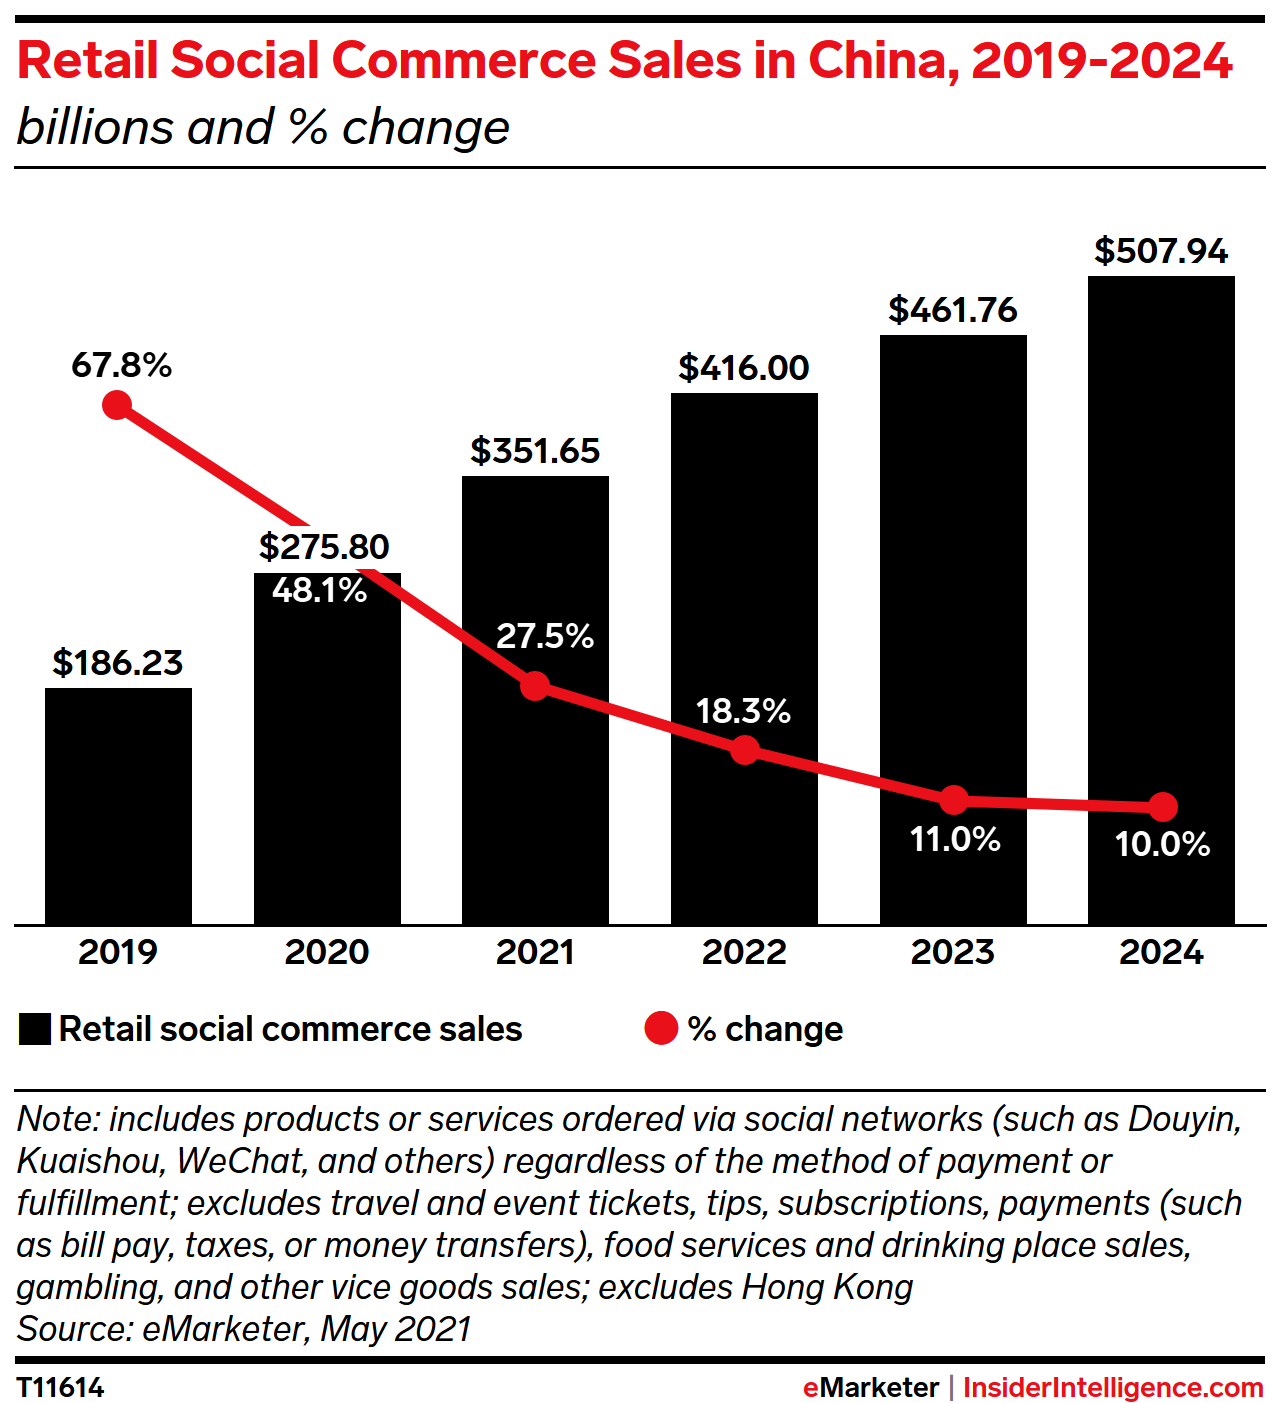 Retail Social Commerce Sales in China, 2019-2024 (billions and % change)